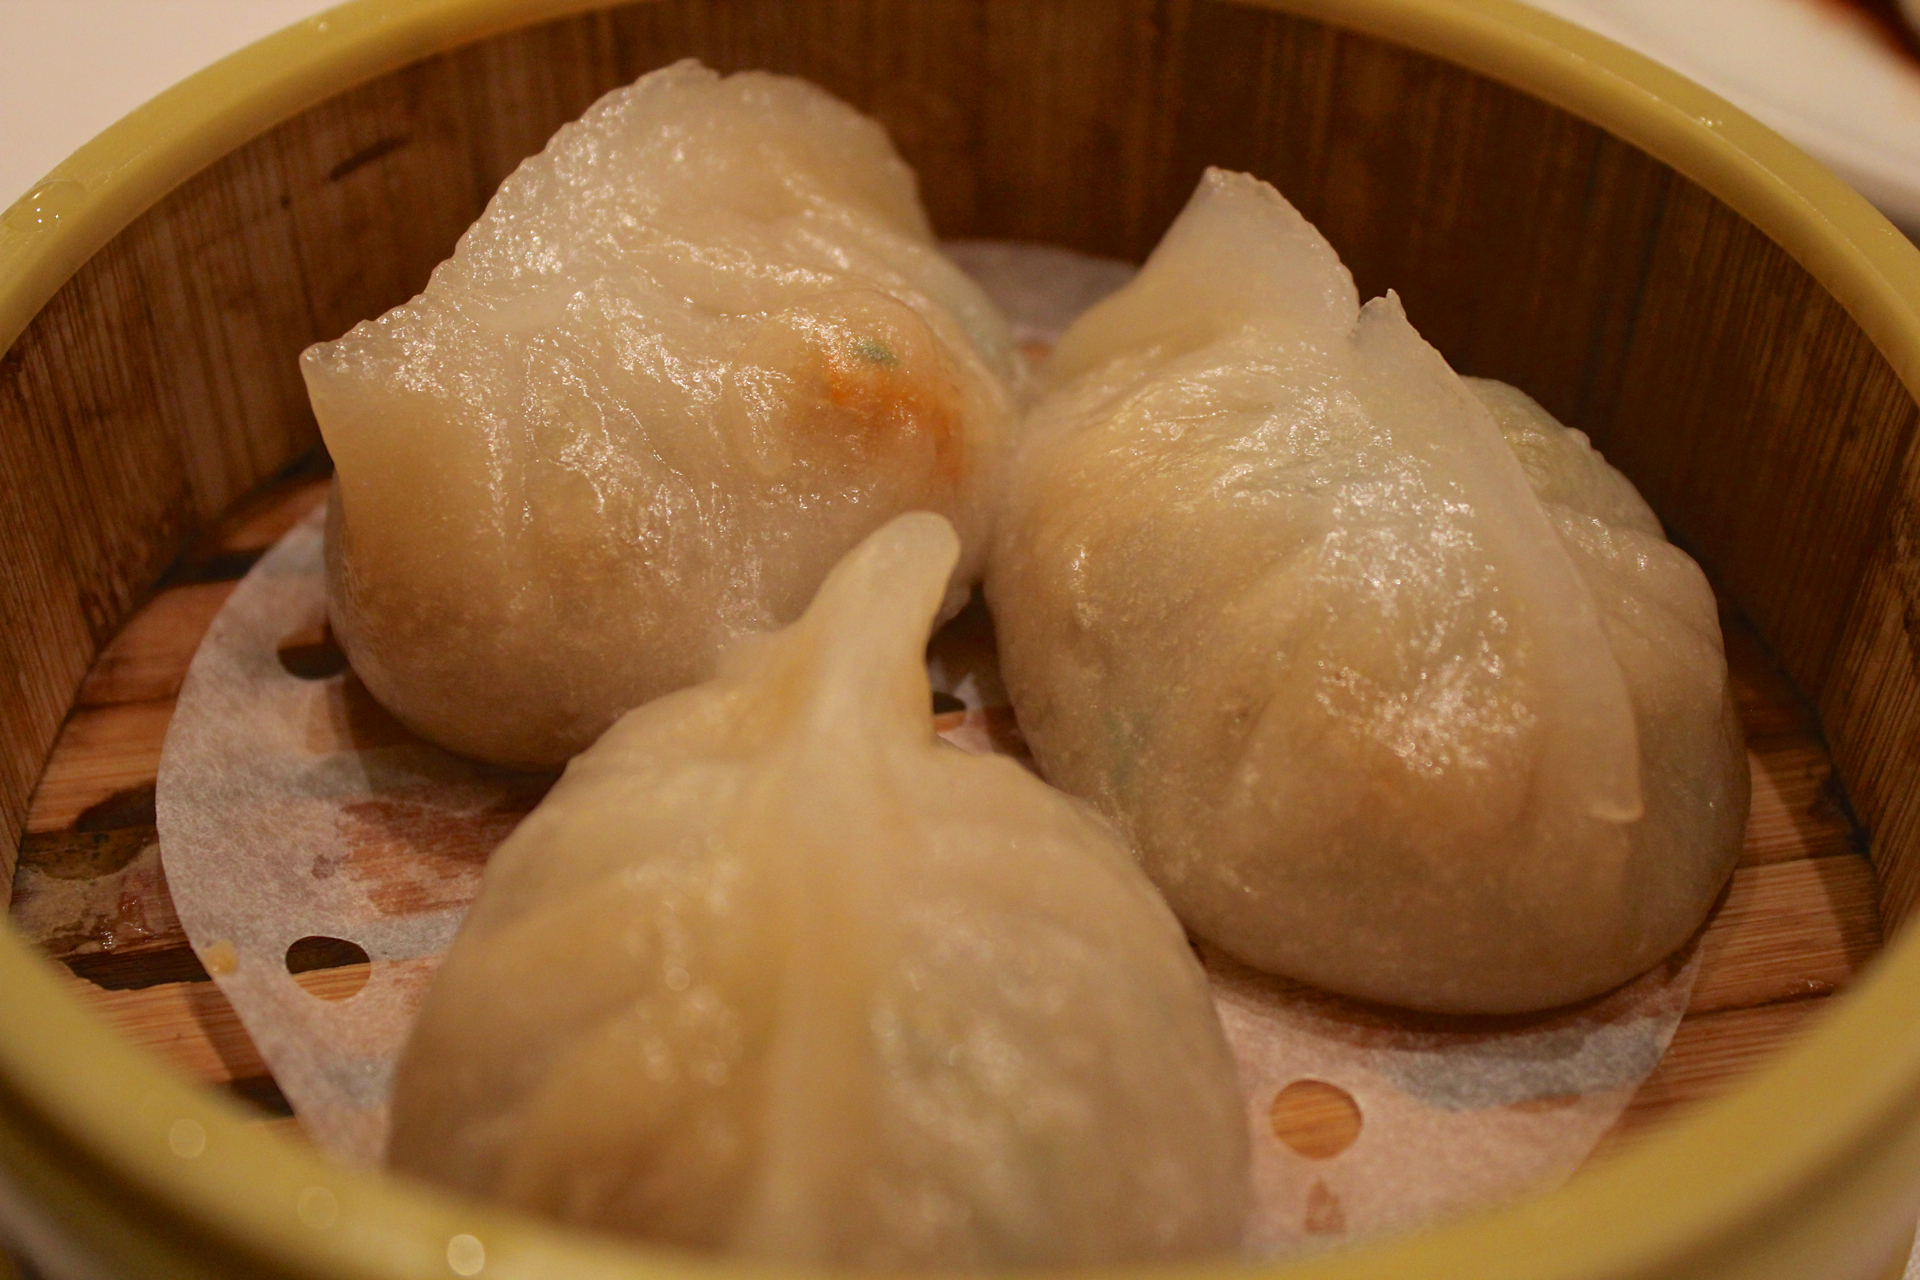 Pork and dried shrimp dumplings at Tai Pan.